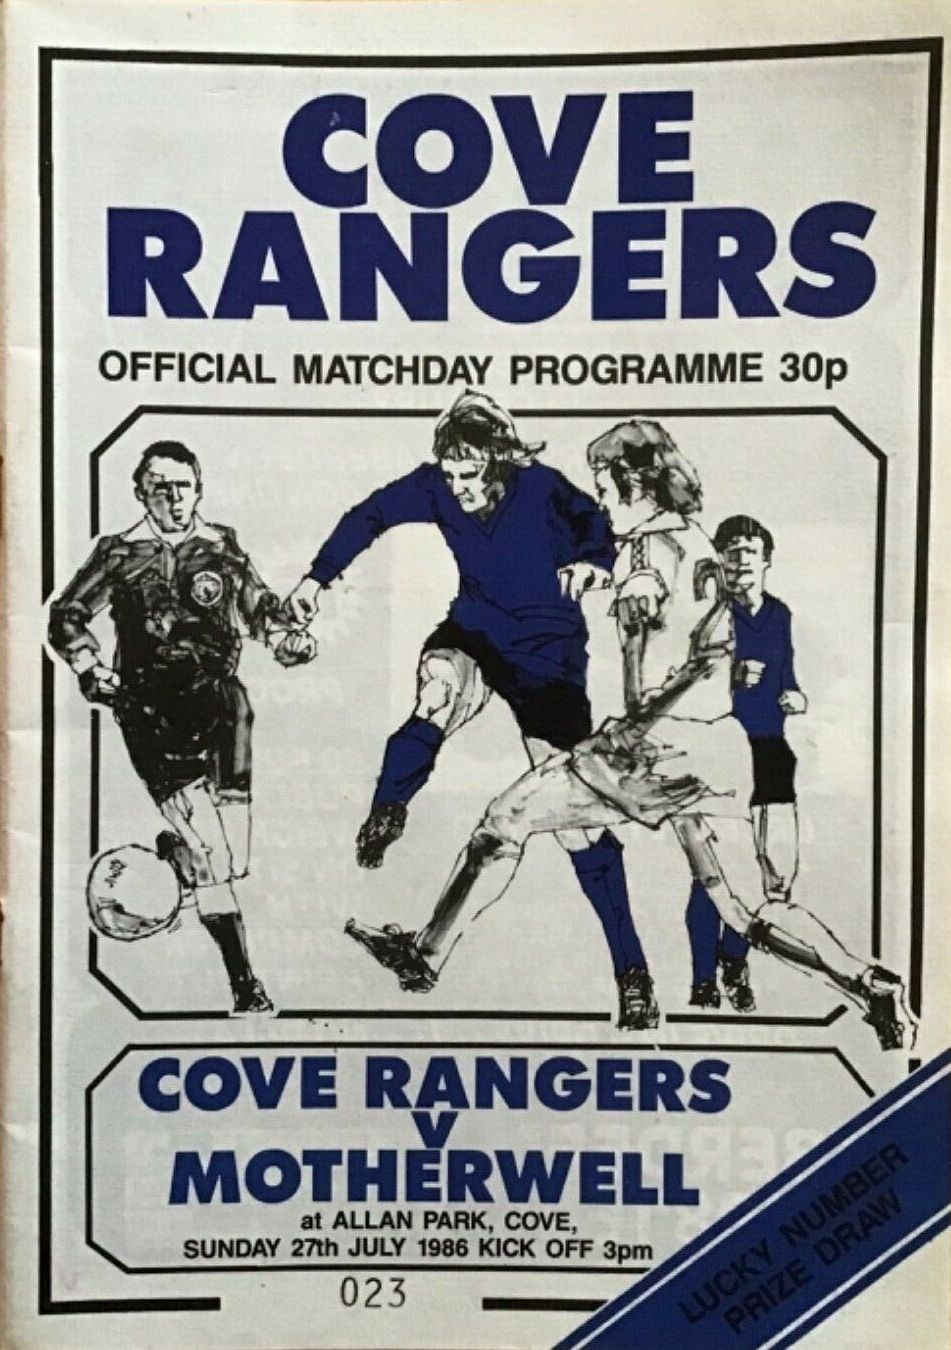 versus Cove Rangers Programme Cover